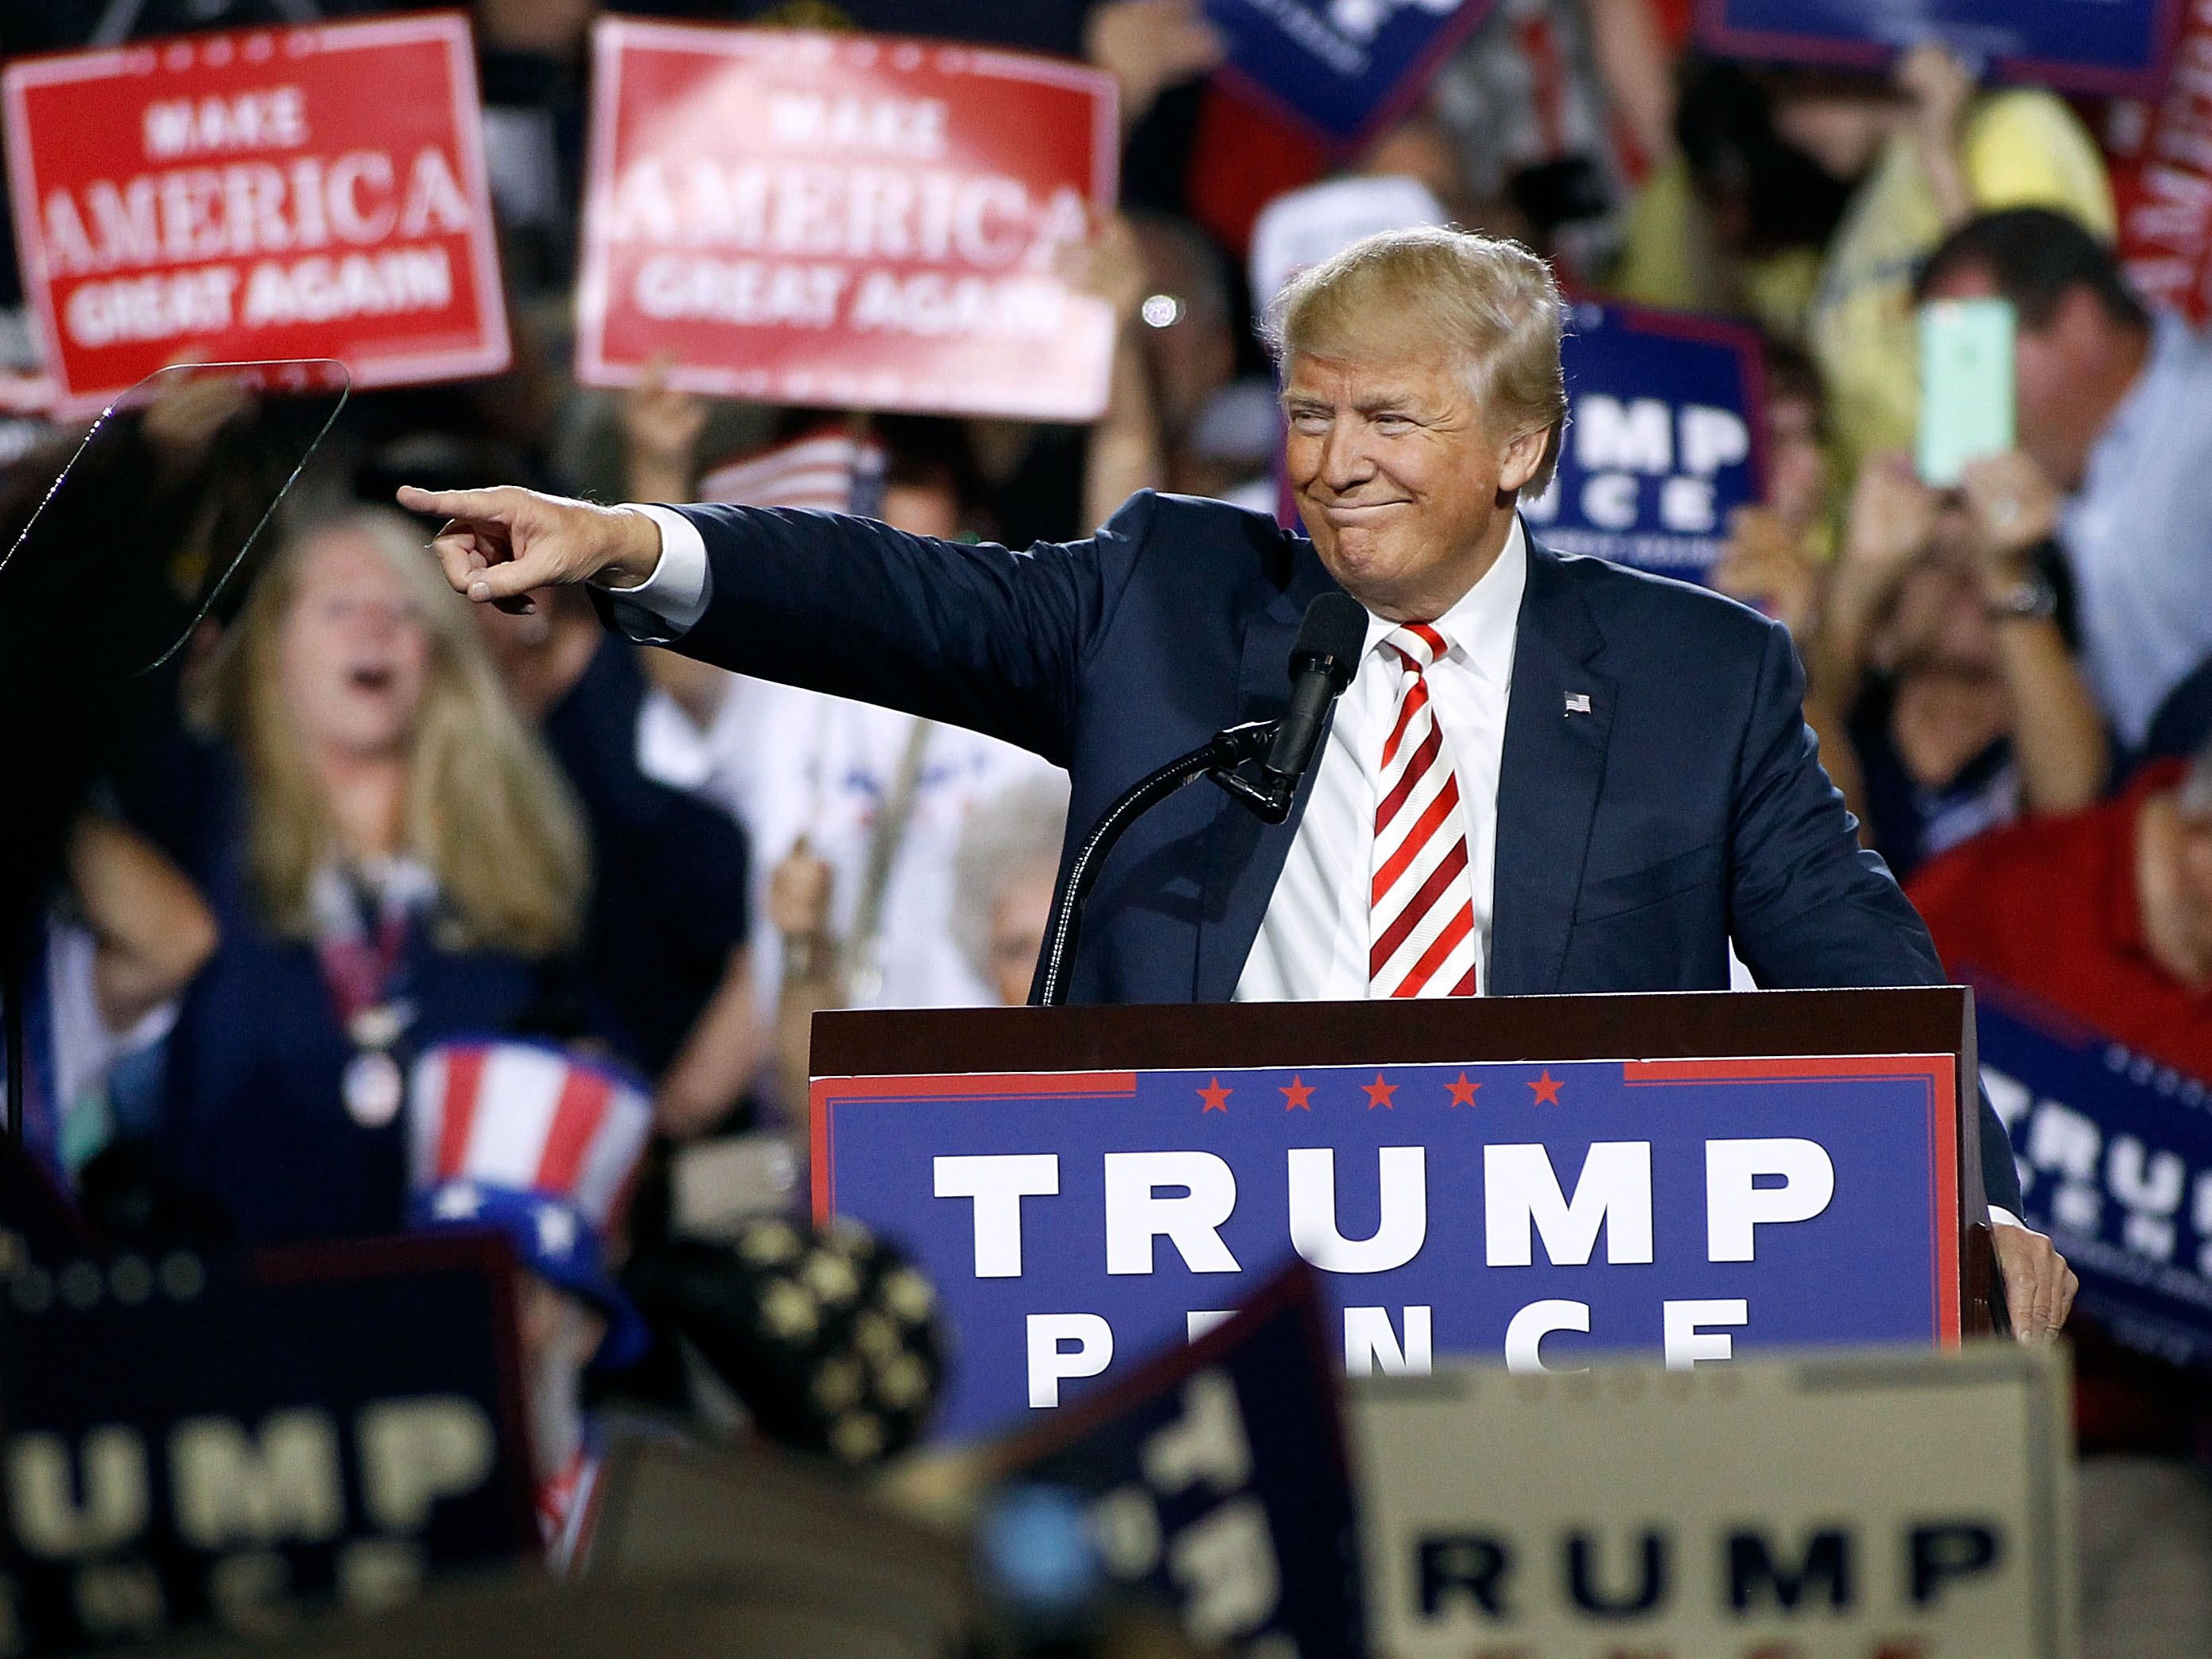 Republican presidential nominee Donald Trump points out to the crowd of supporters as he arrives at a campaign rally on Oct. 4, 2016 in Prescott Valley, Arizona. Ralph Freso/Getty Images